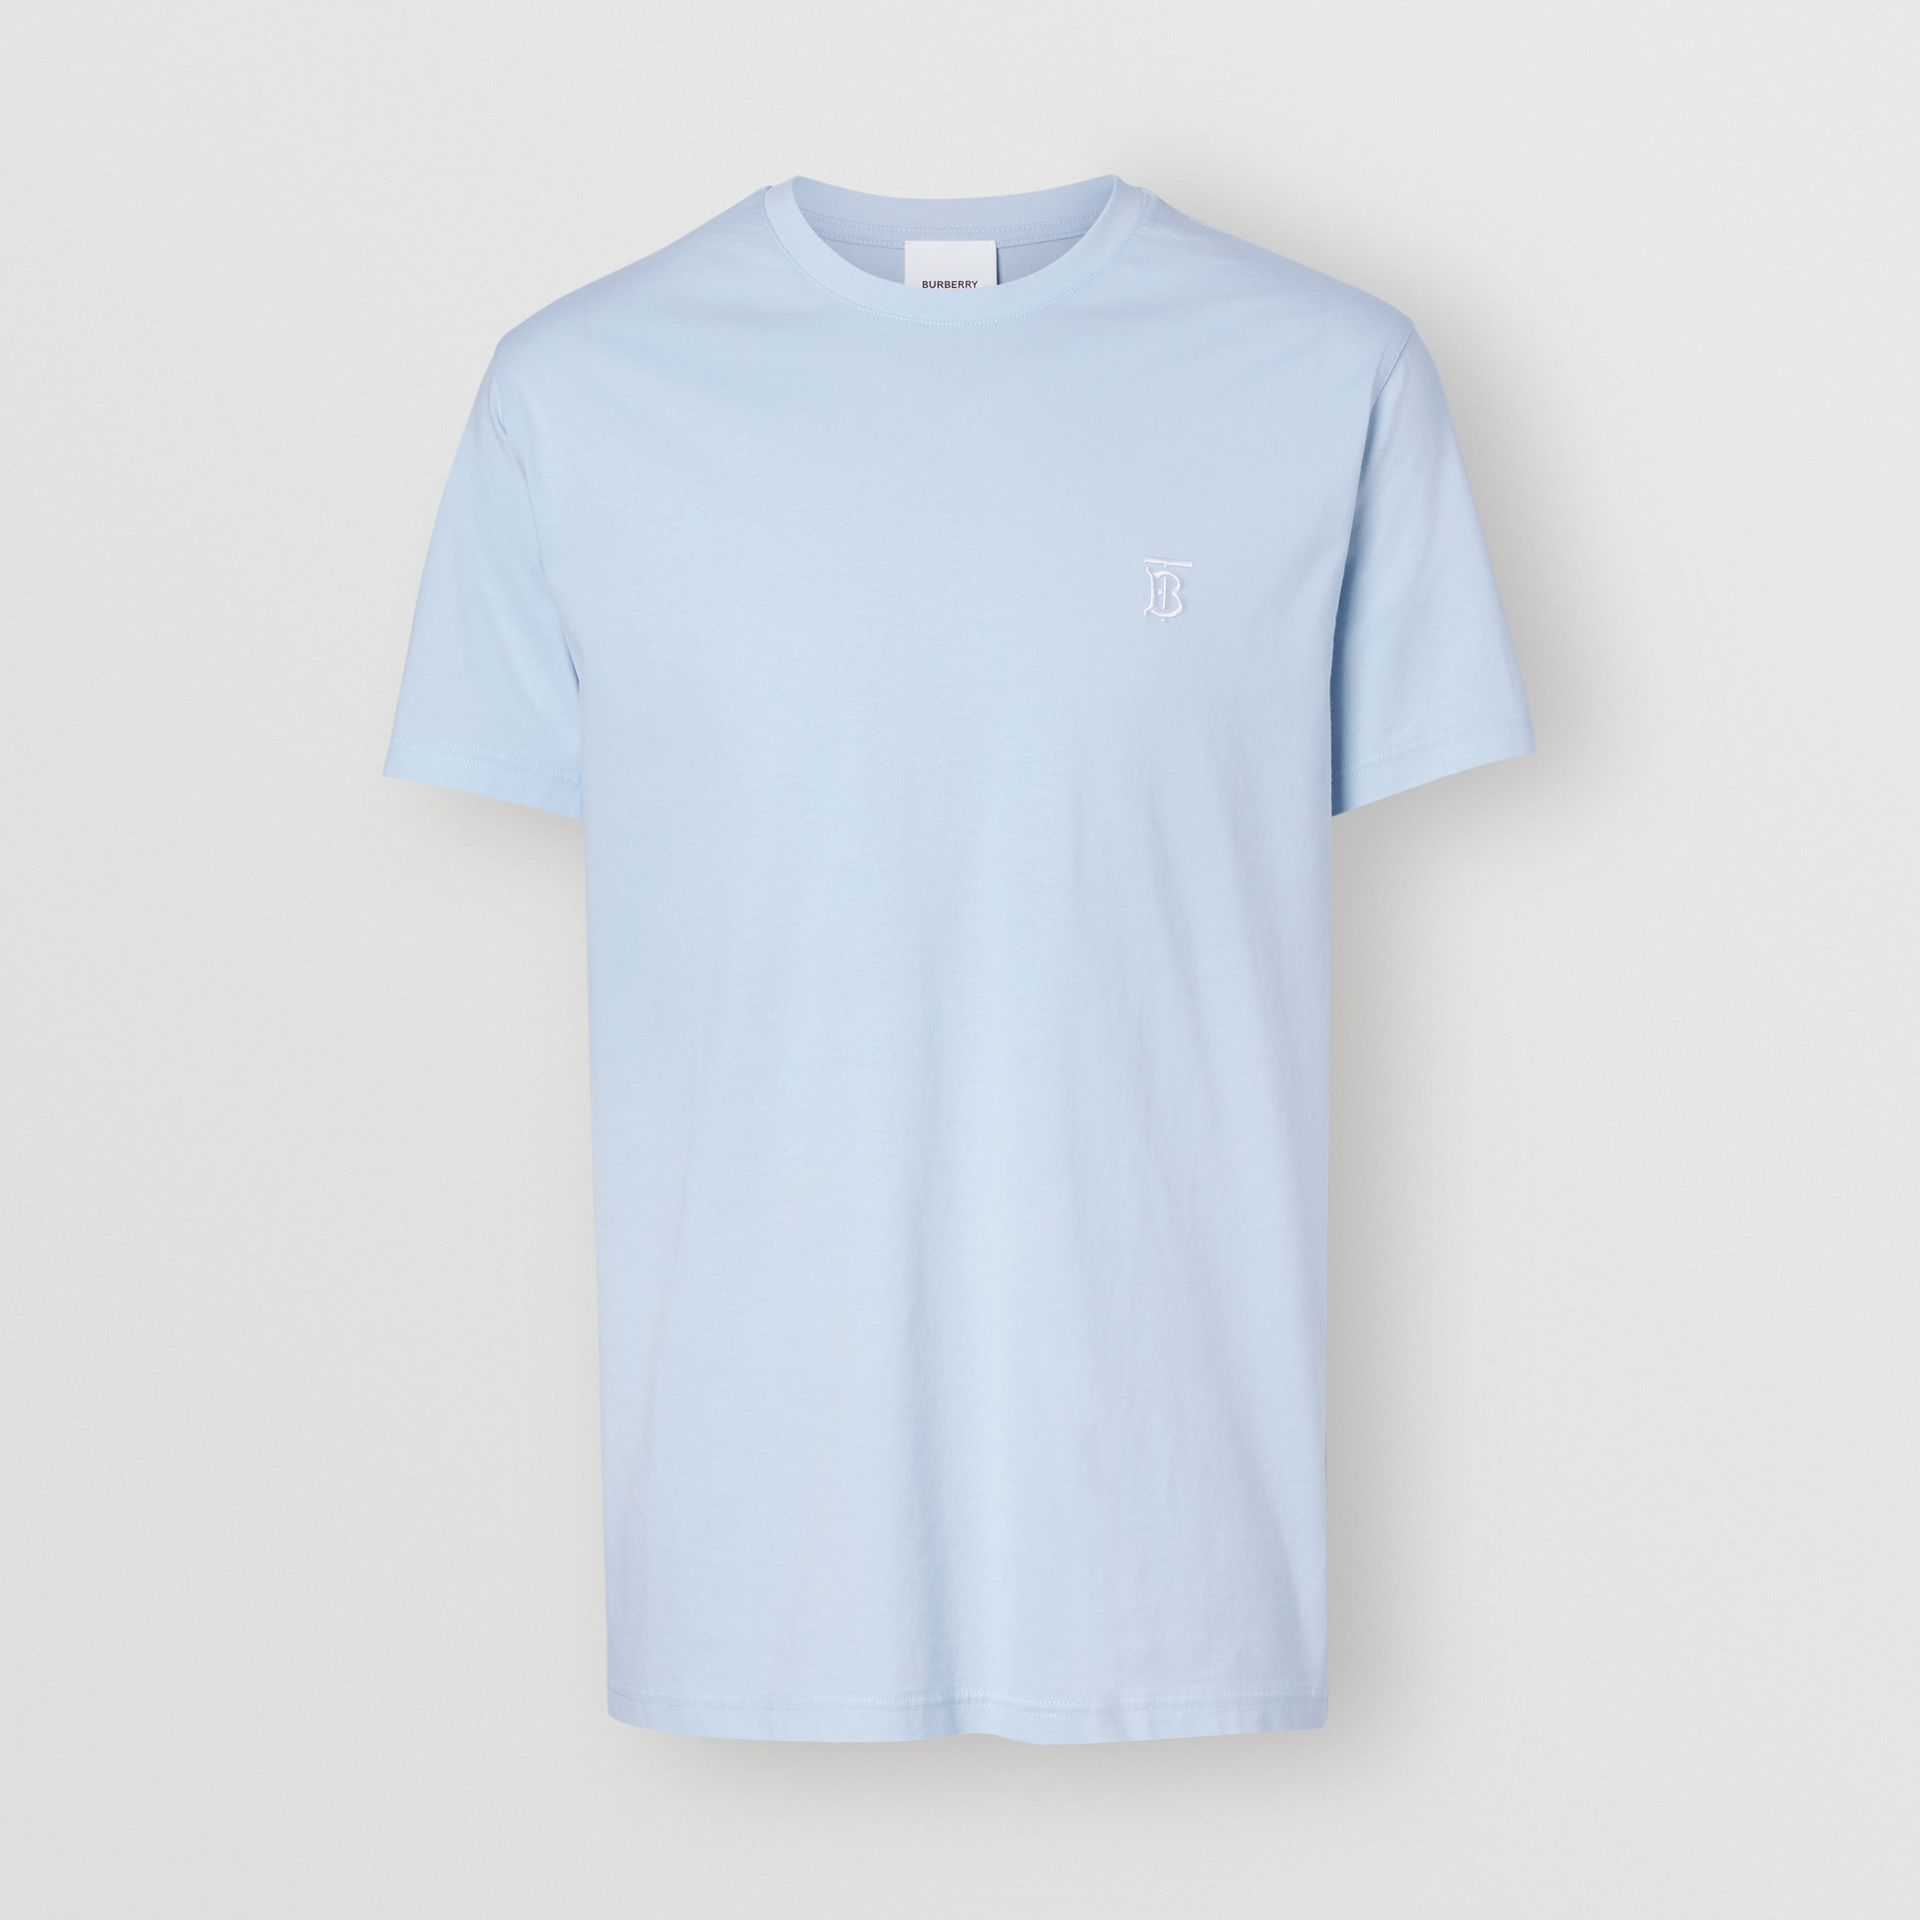 Monogram Motif Cotton T-shirt in Pale Blue - Men | Burberry - gallery image 3